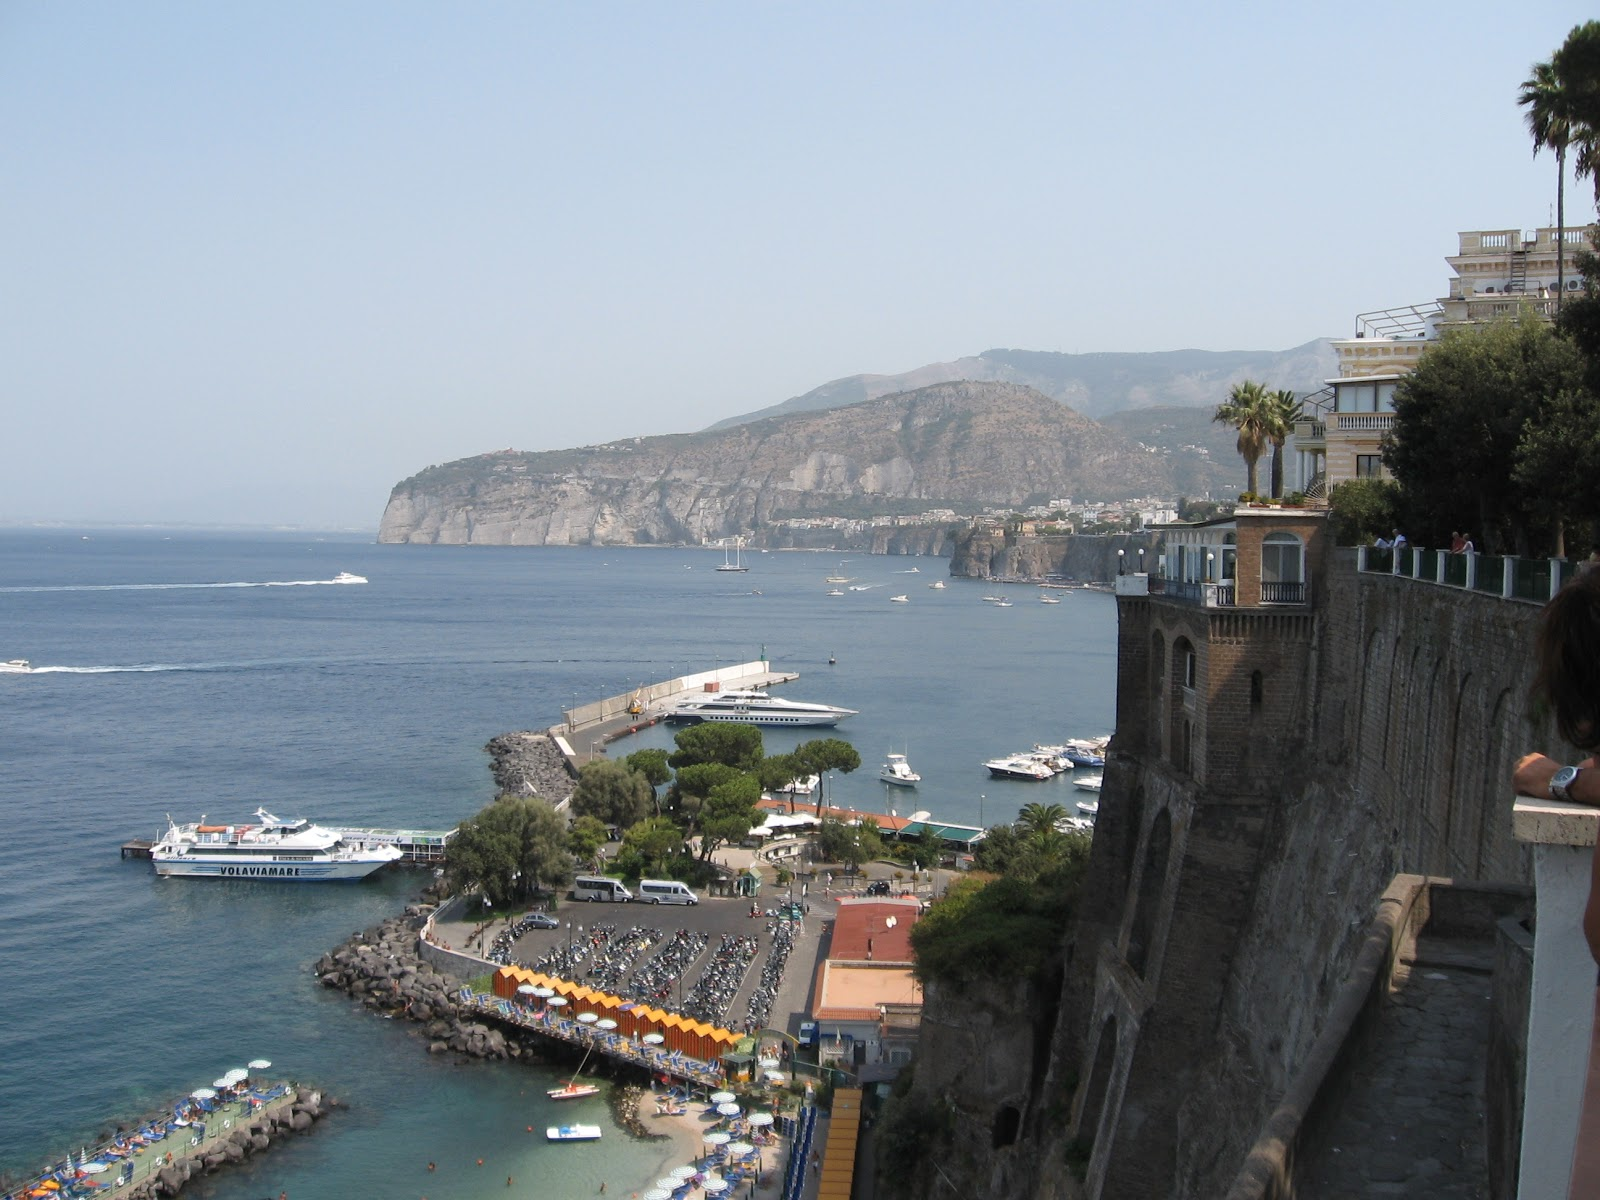 Bar Villa Comunale Sorrento and the Sorrentine Peninsula, Spectacular view from Villa Comunale |Best of Sorrento